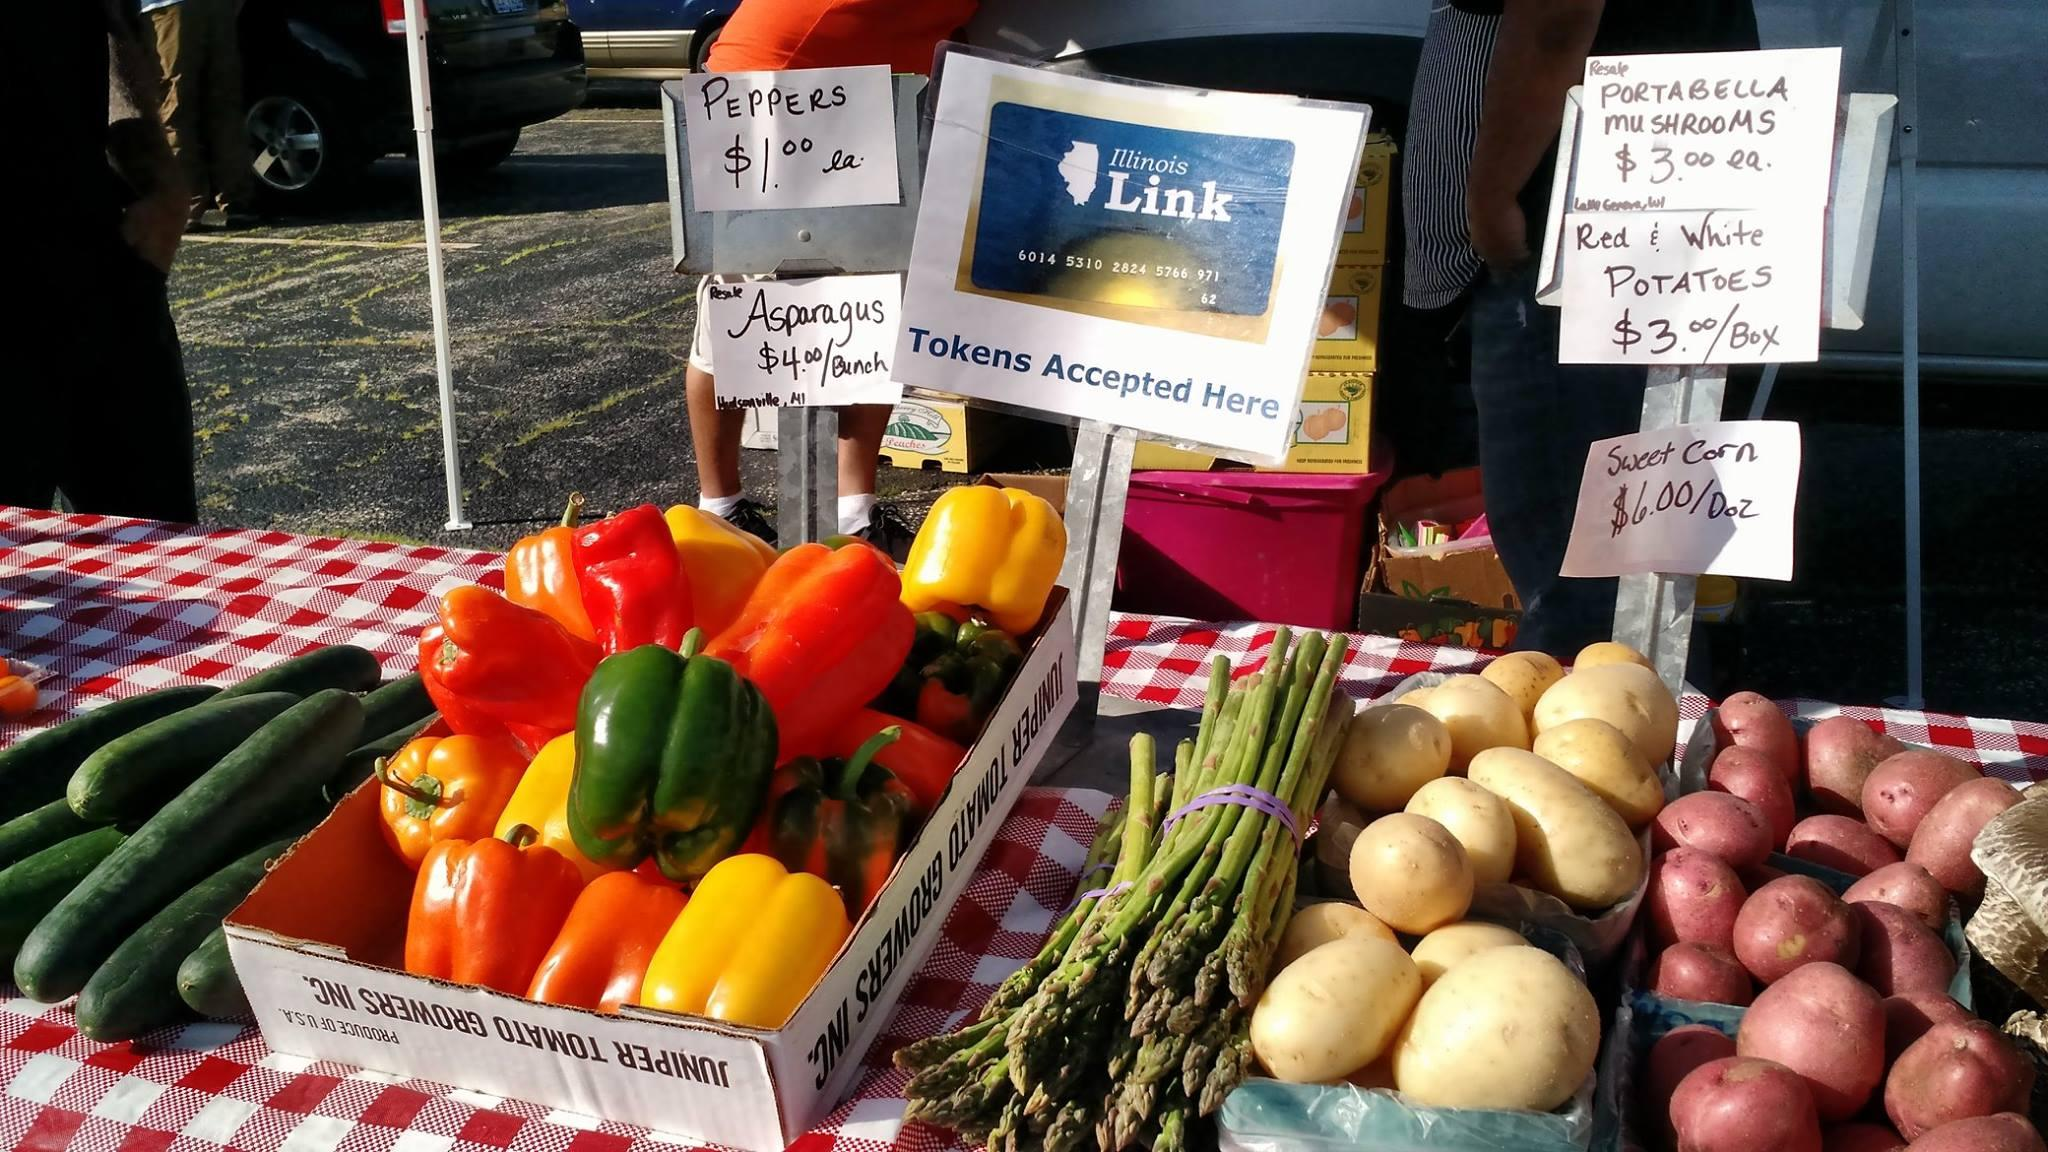 More than 40 farmers markets in Chicago accept payment with the Illinois Link card. (Illinois Farmers Market Alliance / Facebook)